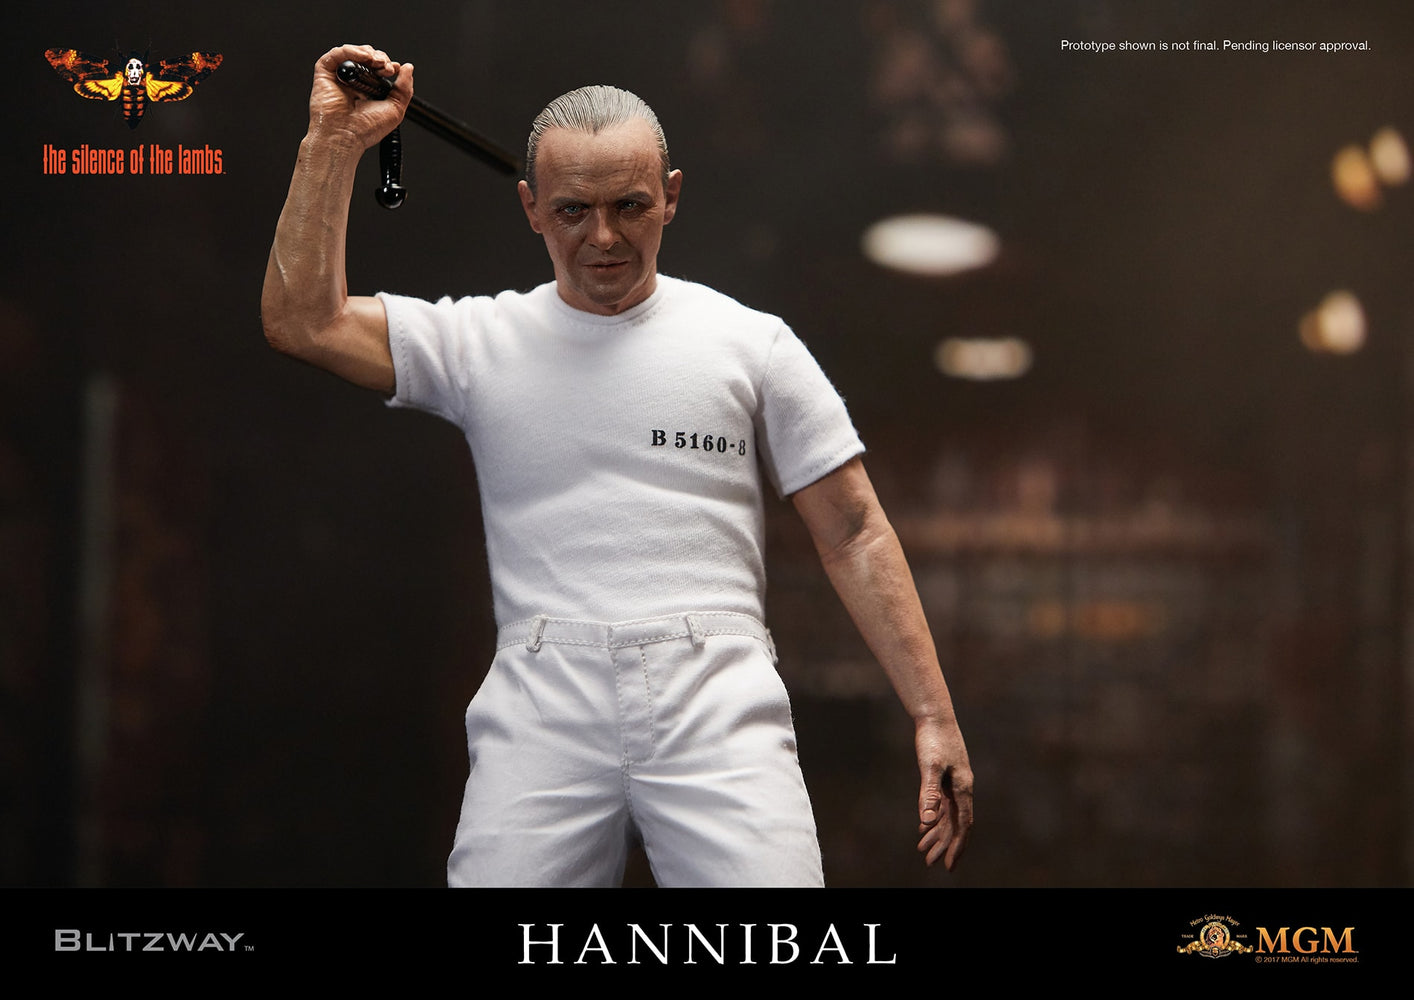 Blitzway Silence of the Lambs: Hannibal Lecter (White Prison Uniform Ver.) 1/6 Scale Action Figure